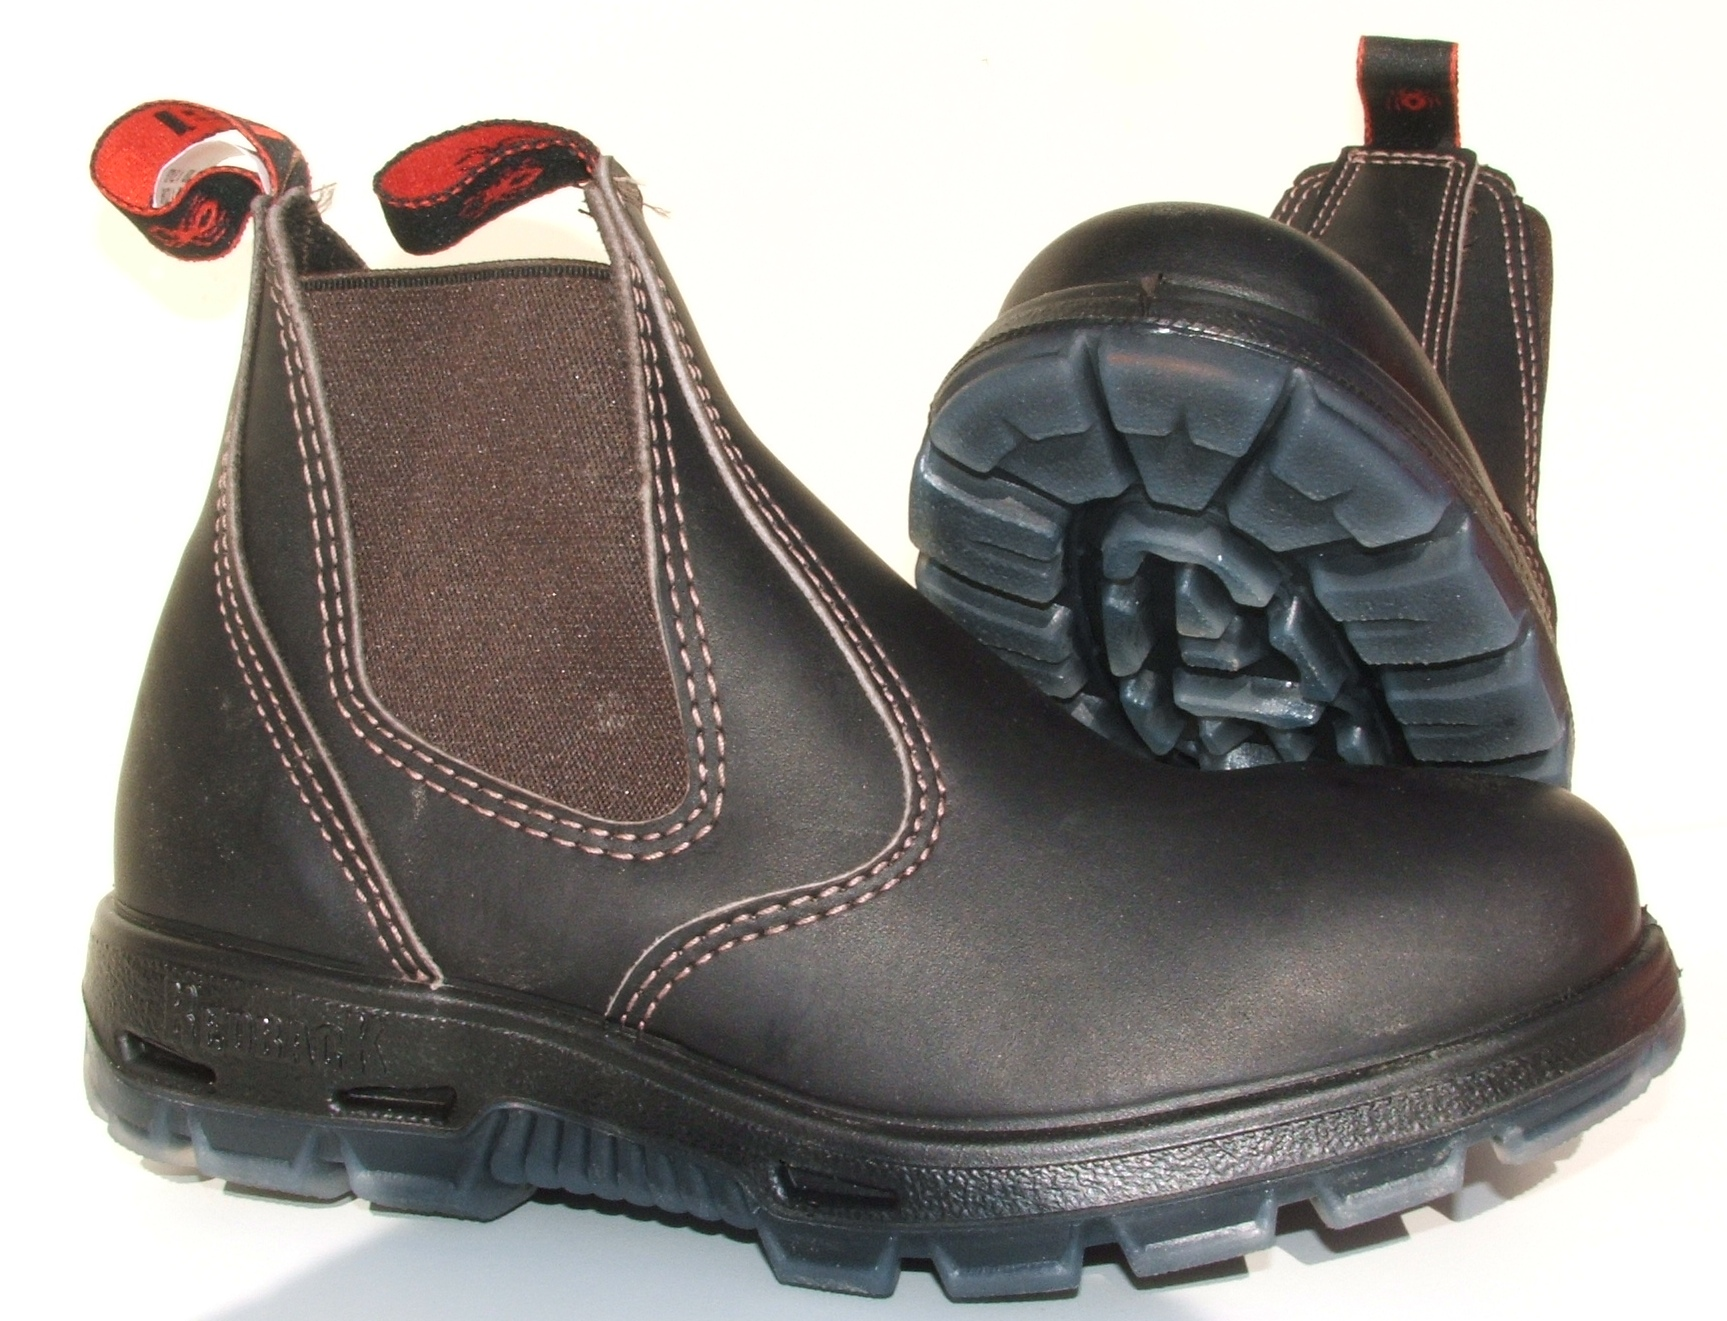 Redback Boots Brown with steel caps - The Australian Way